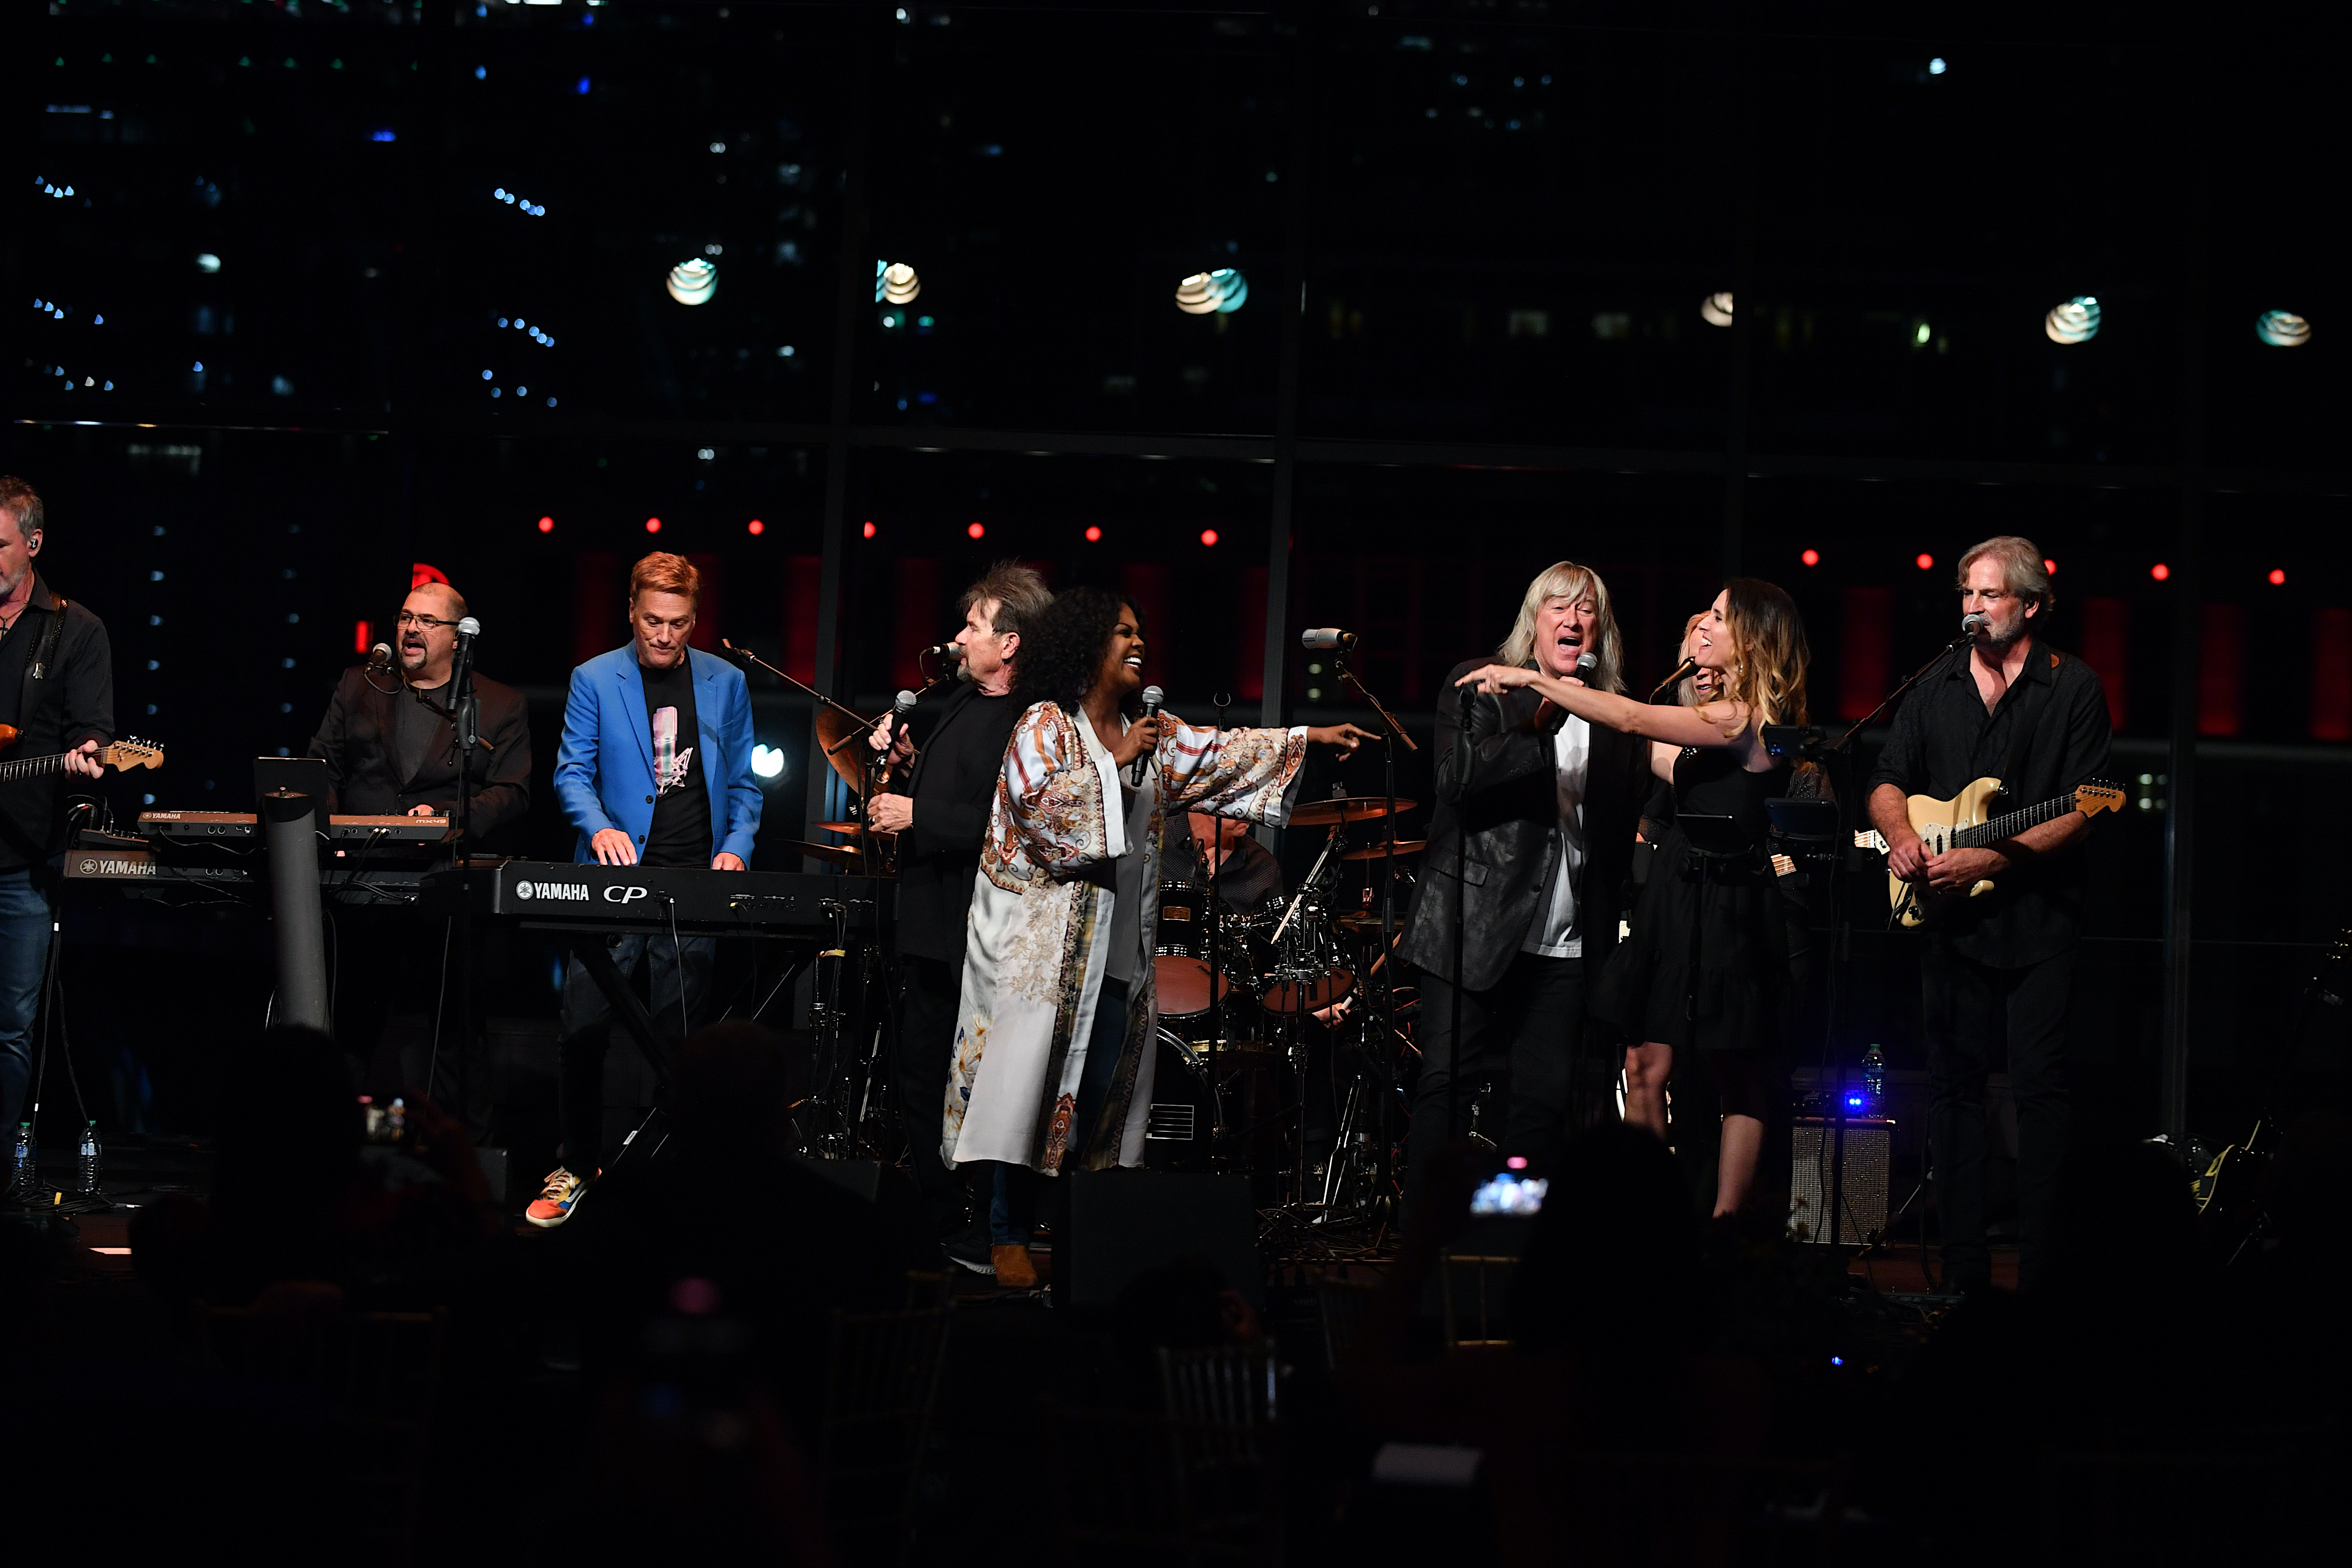 Russ Taff, Michael W. Smith, CeCe Winans, John Schlitt, and Rebecca St. James perform on stage during the afterparty